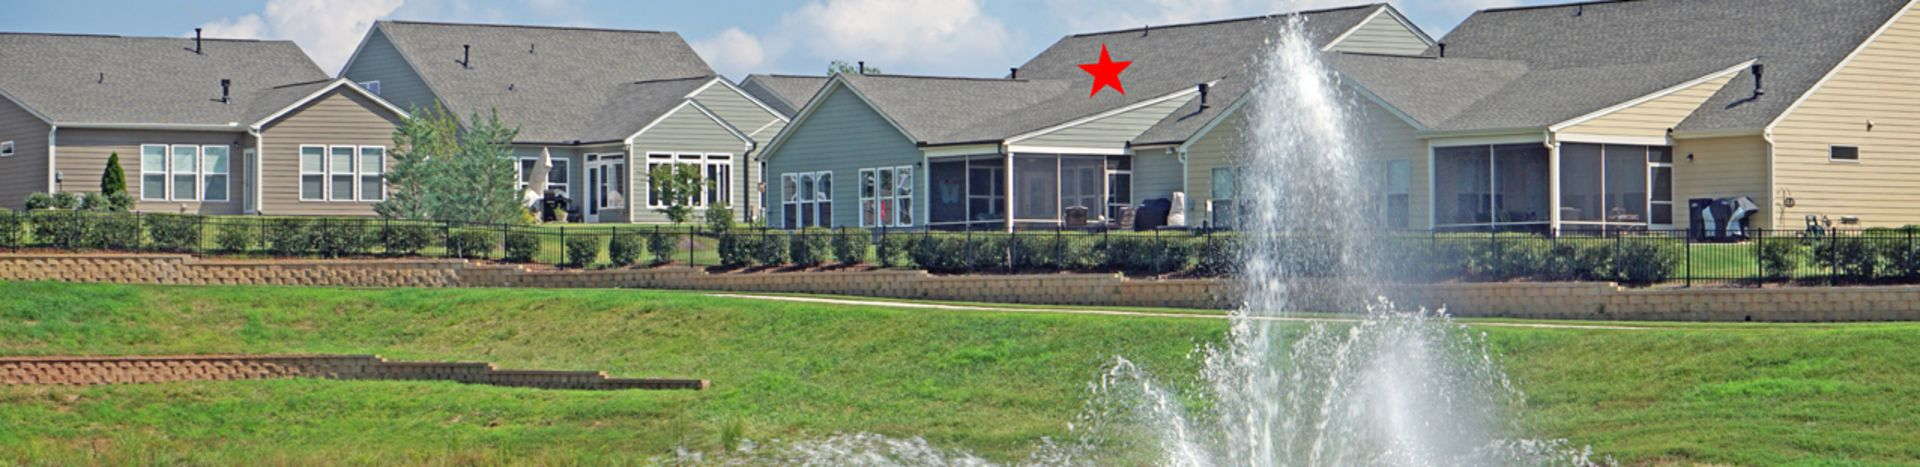 Exquisite water-view home in Carolina Arbors!